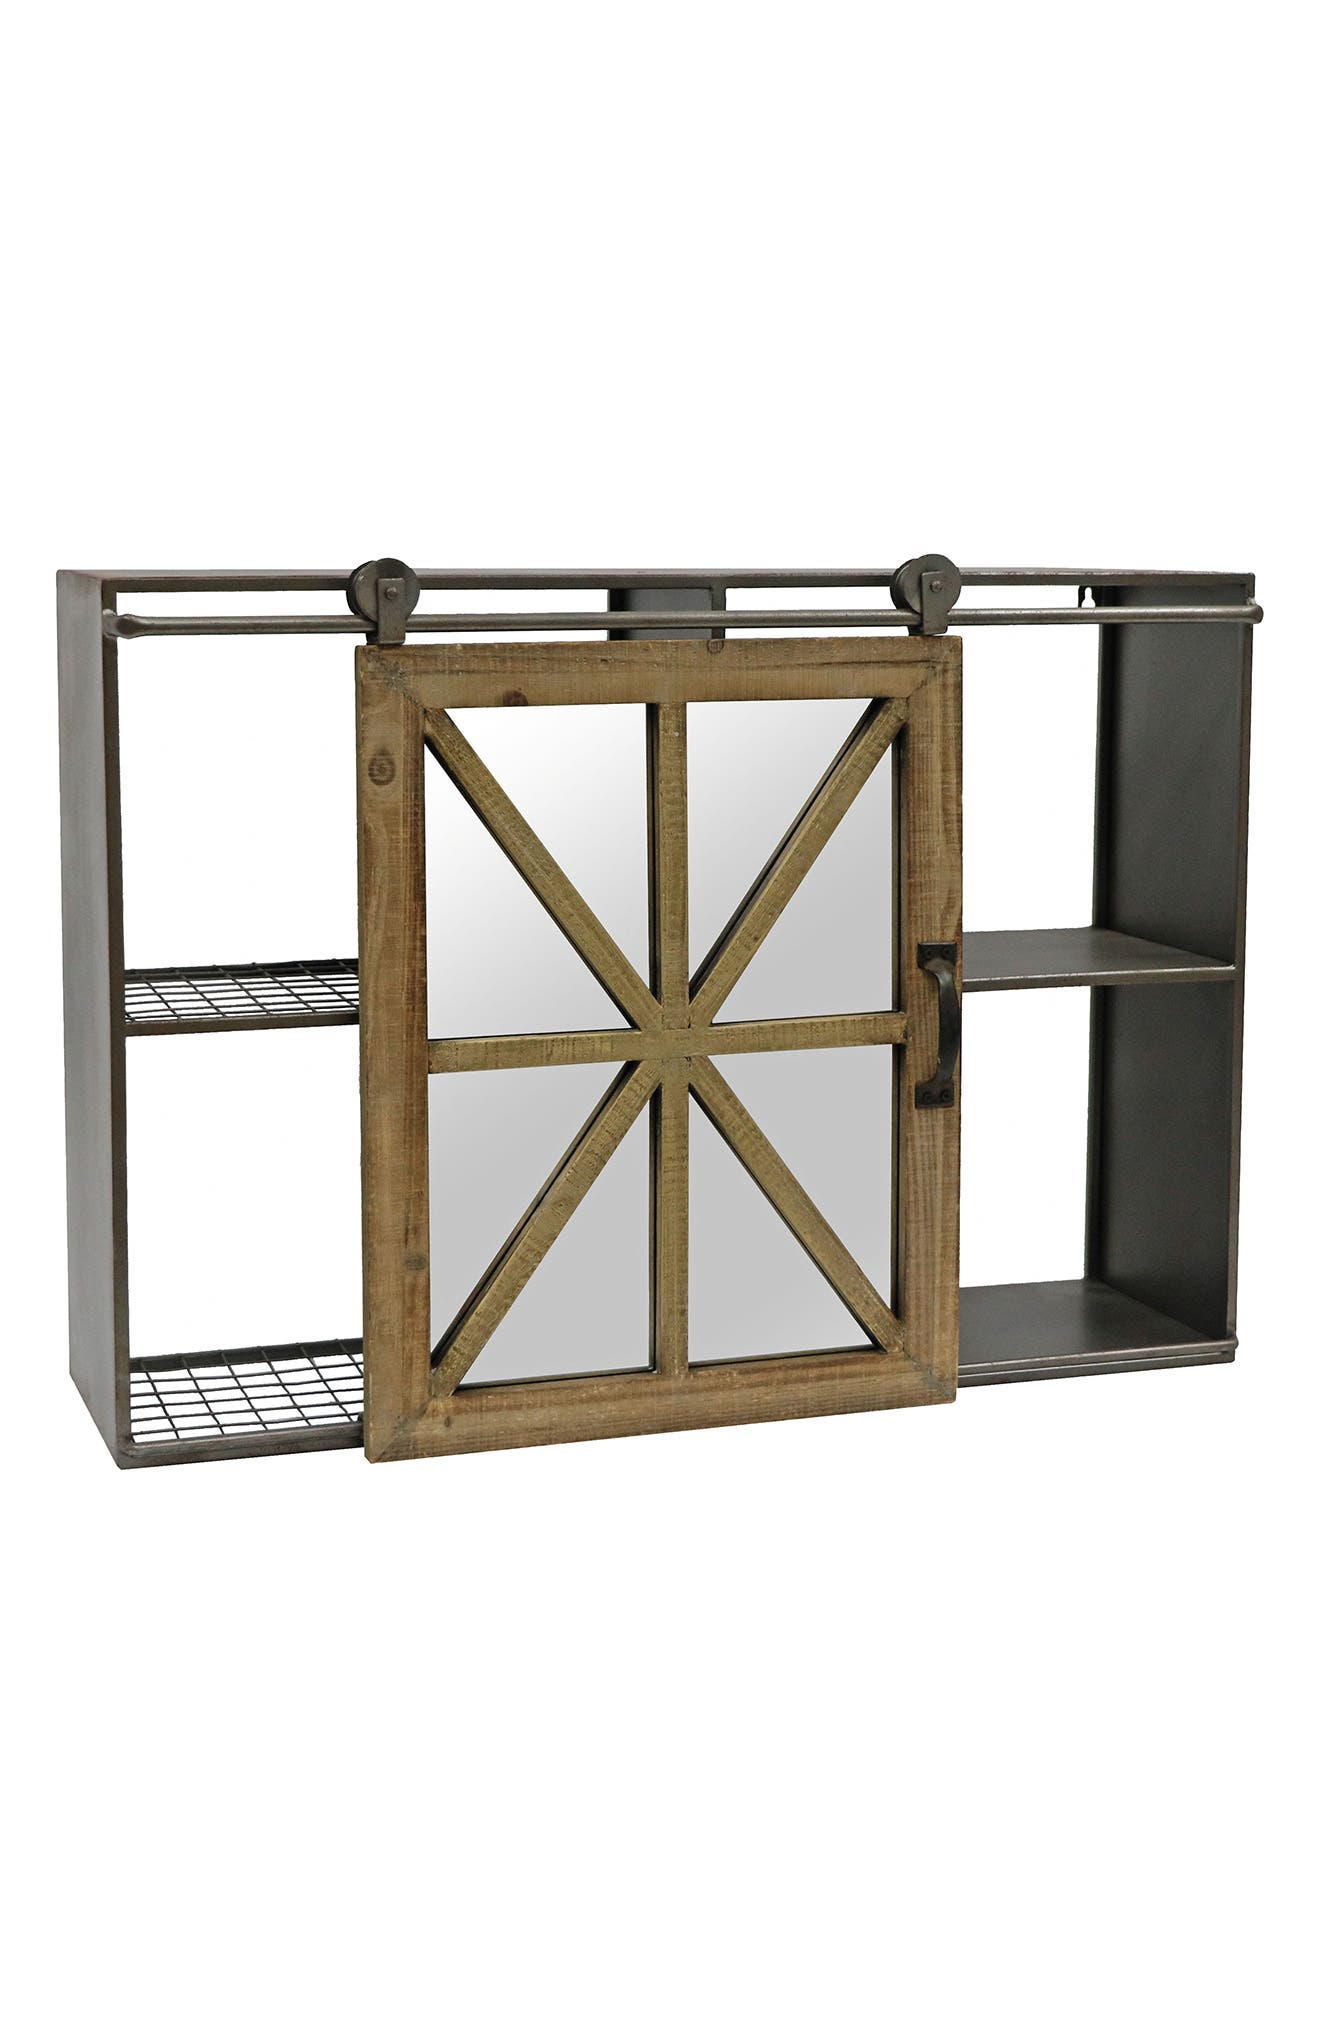 Main Image - Foreside Barn Door Wall Shelf